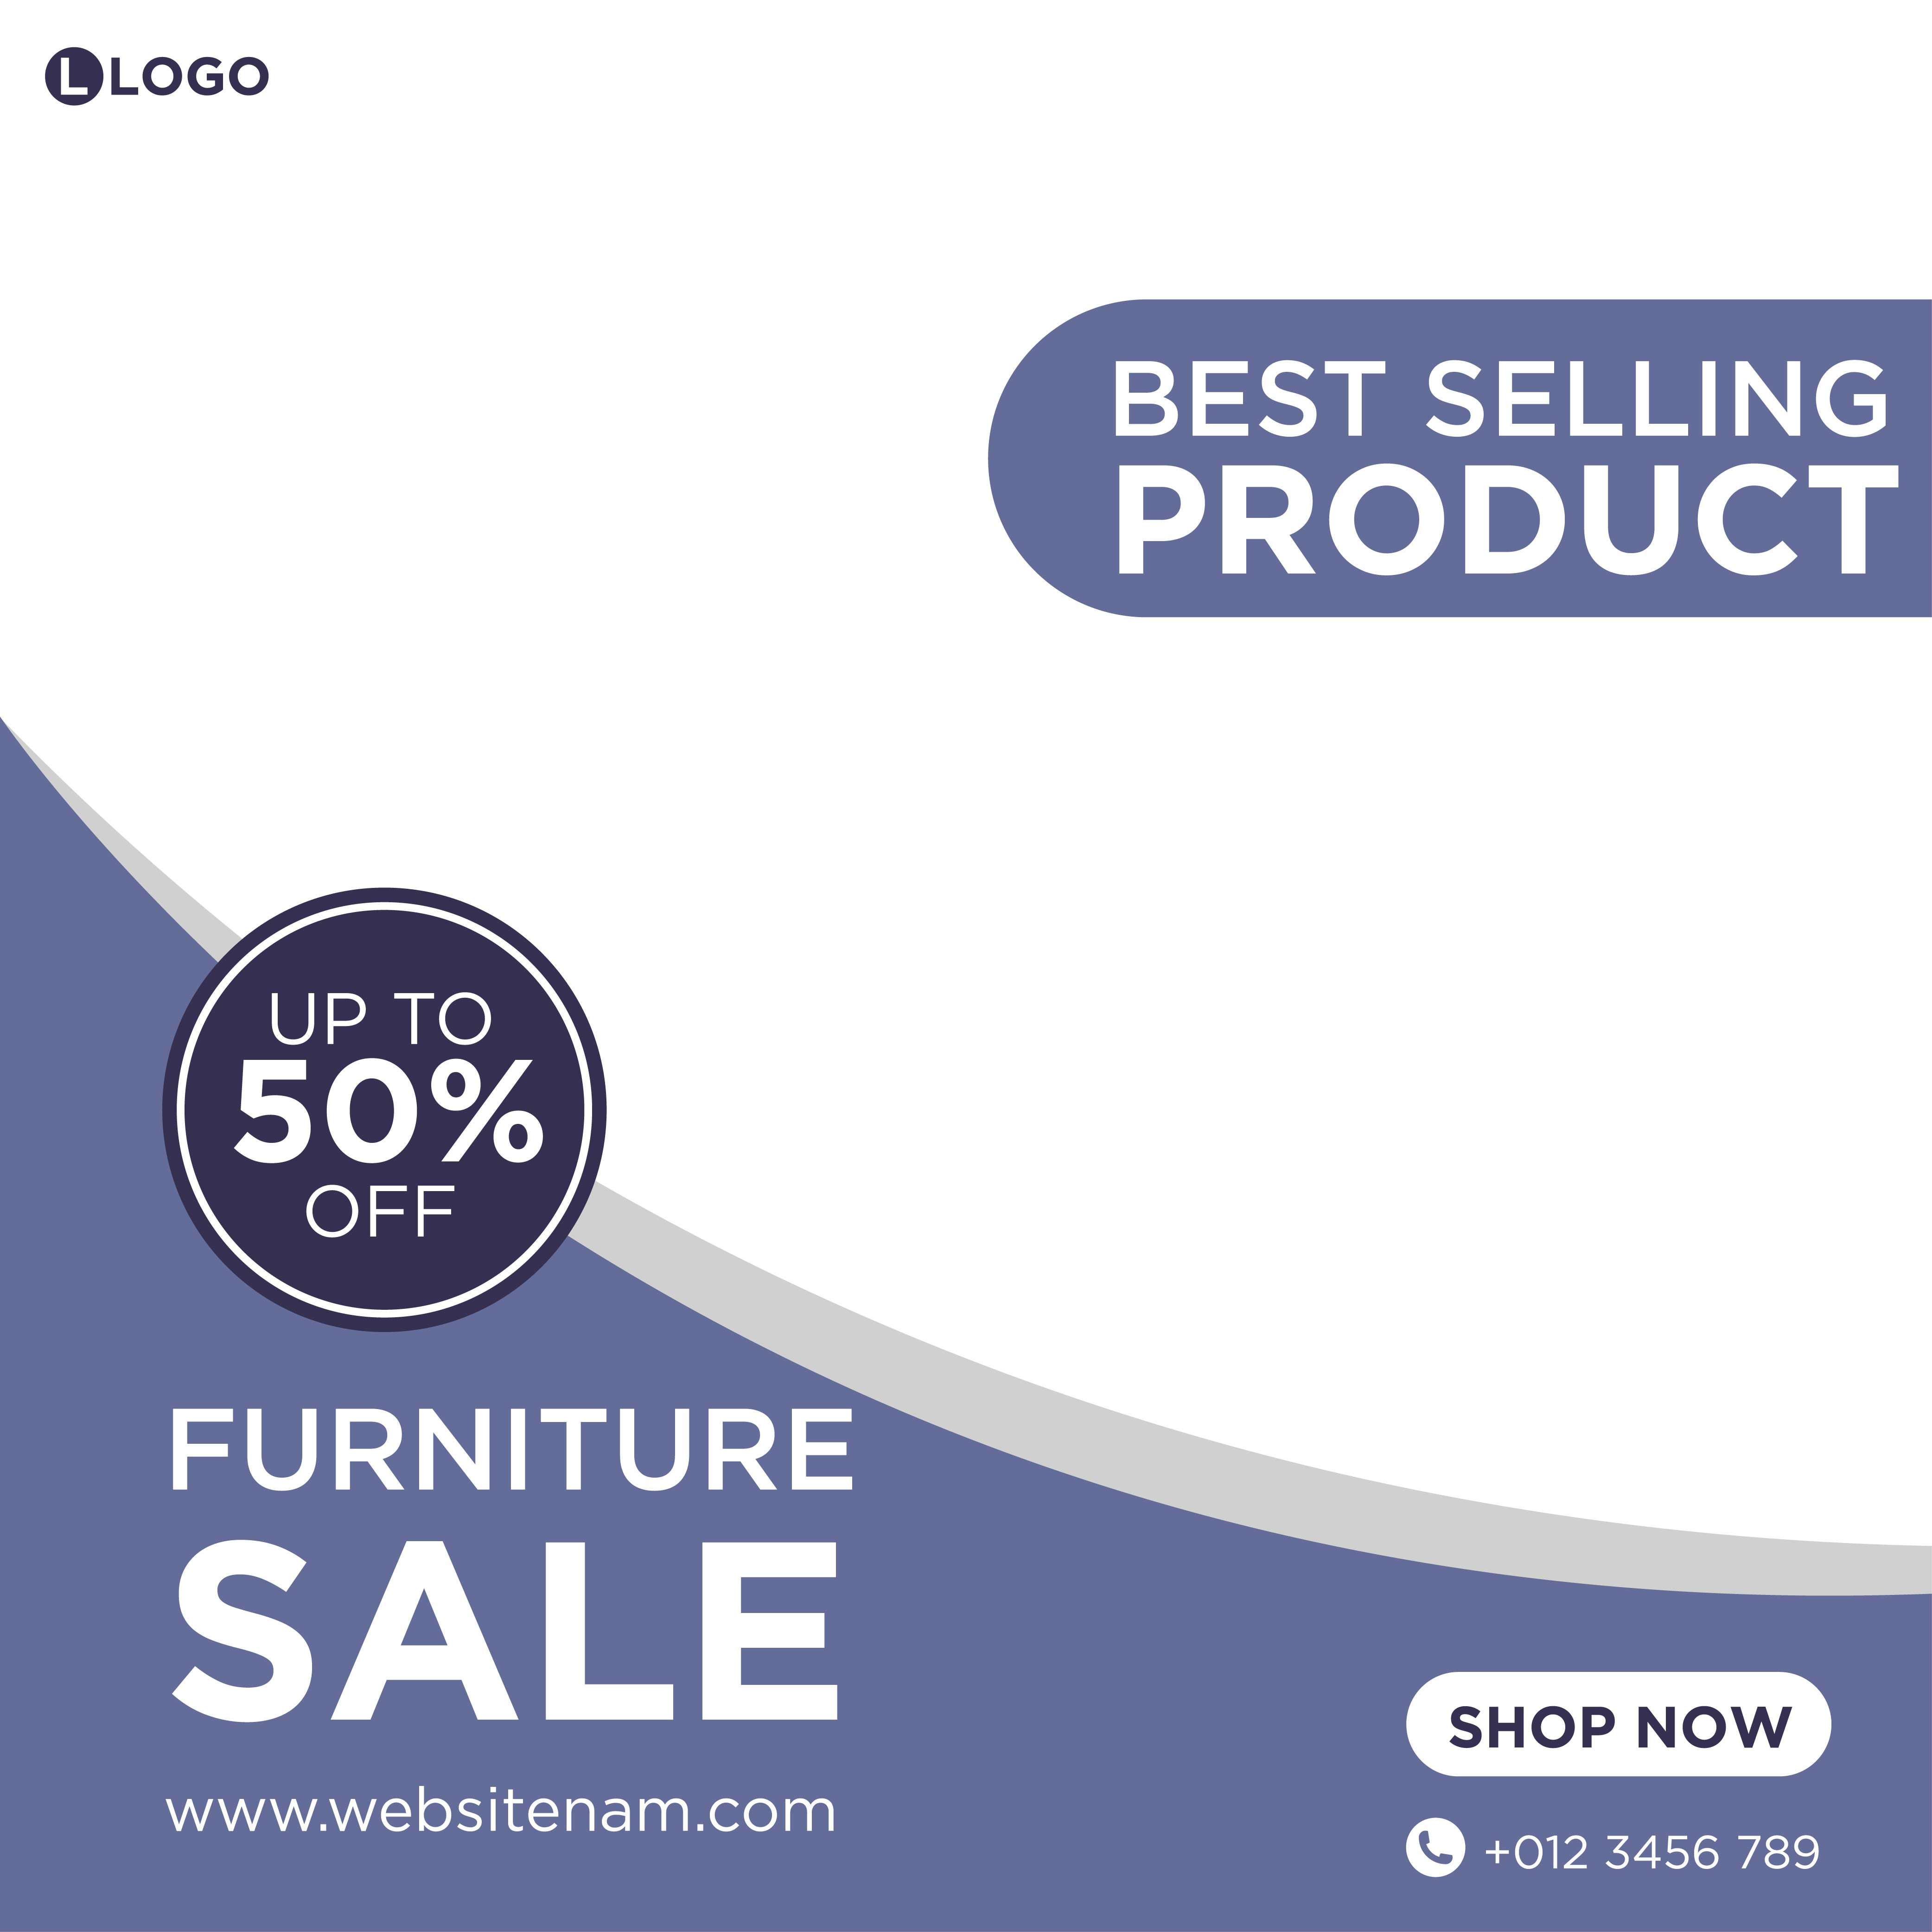 Furniture Themed Purple and White Social Media Template